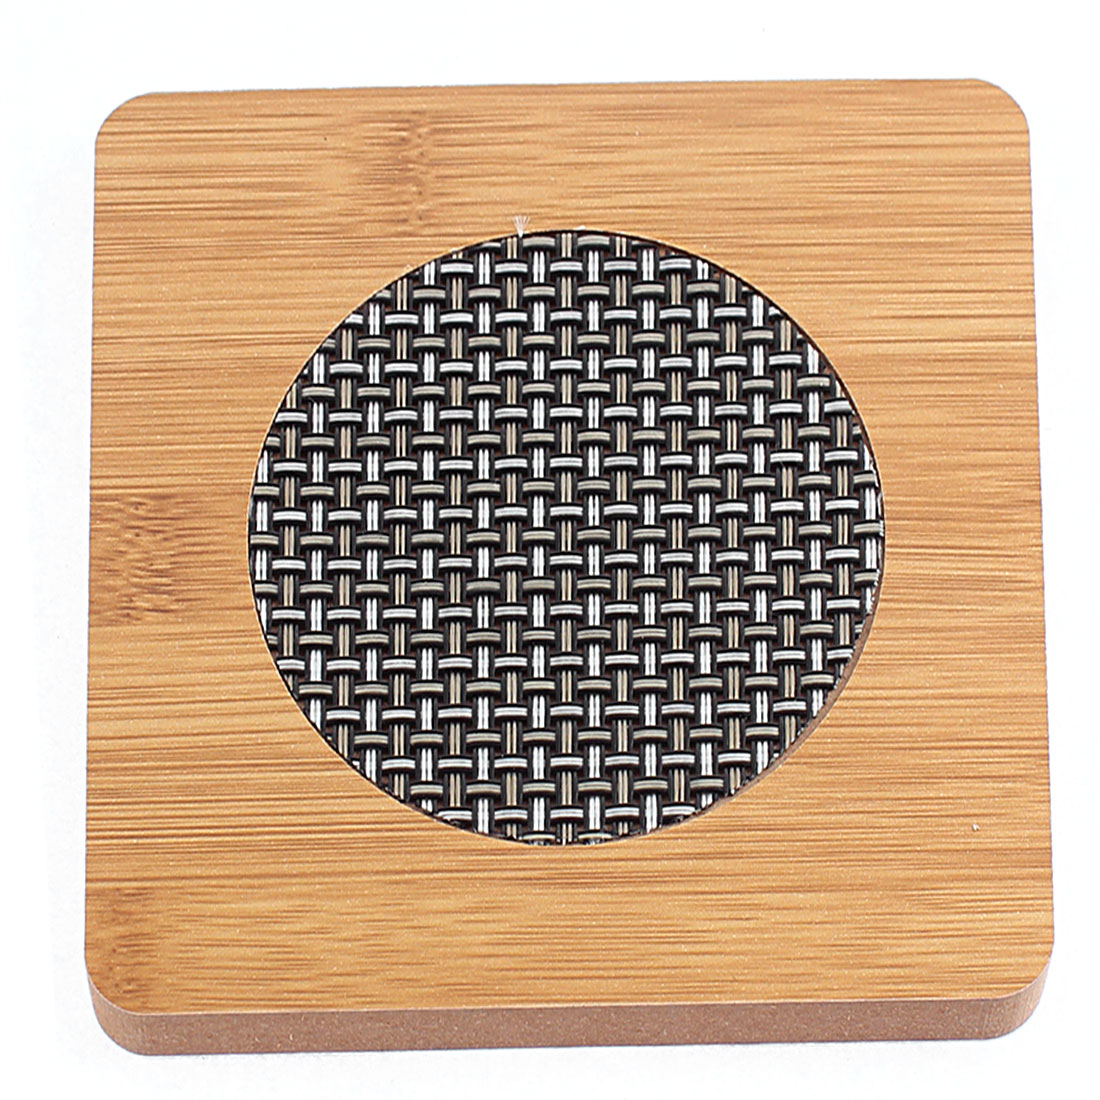 Household Wooden Square Shape Heat Resistant Cup Pot Mat Coaster Pad